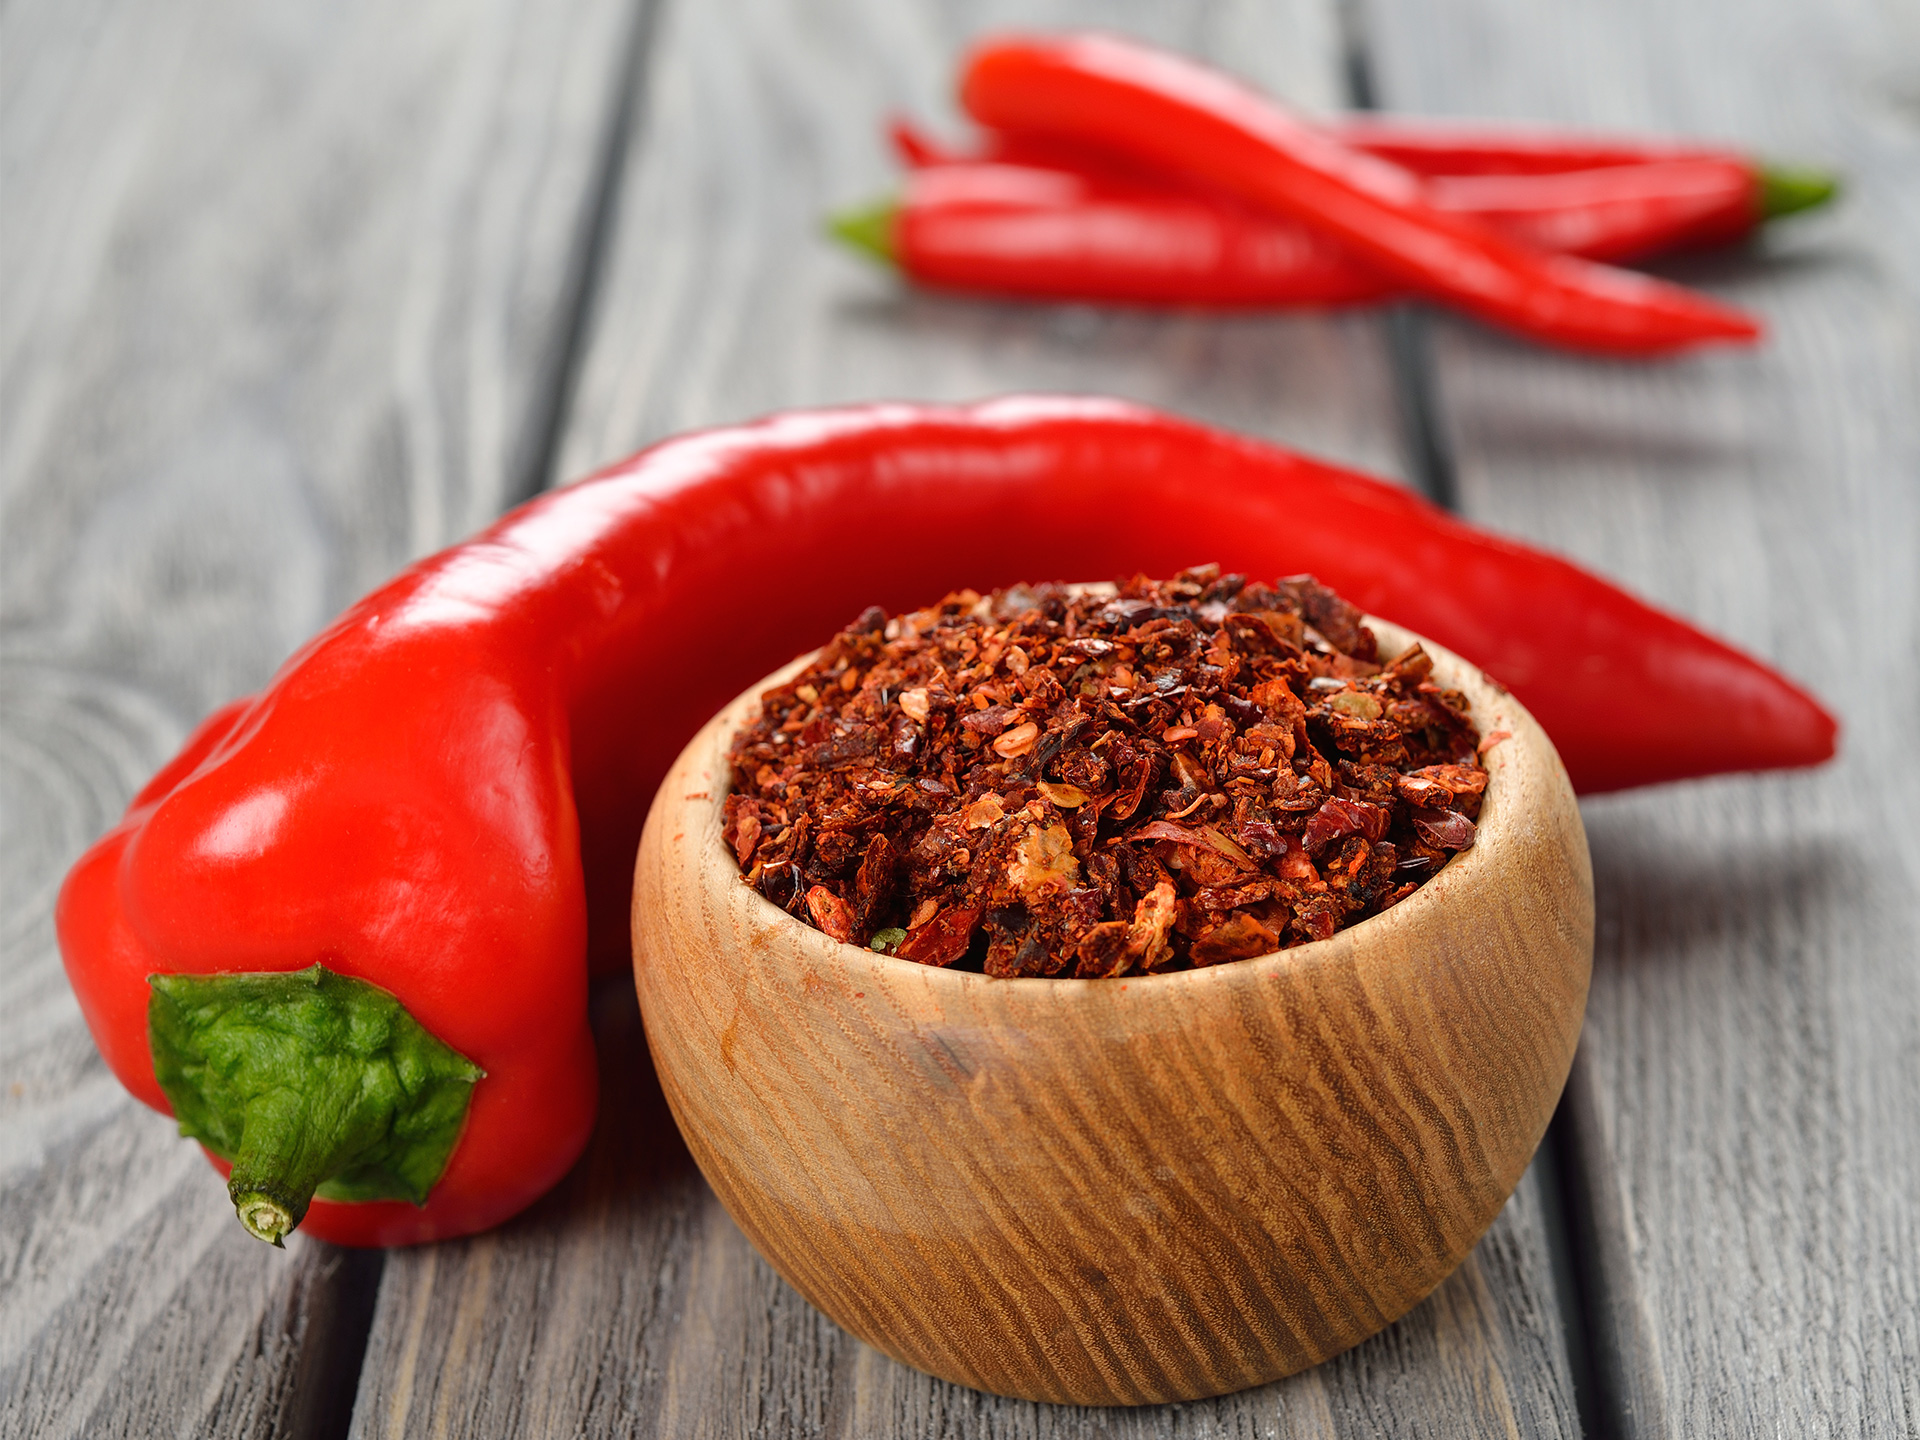 Chili Health Benefits